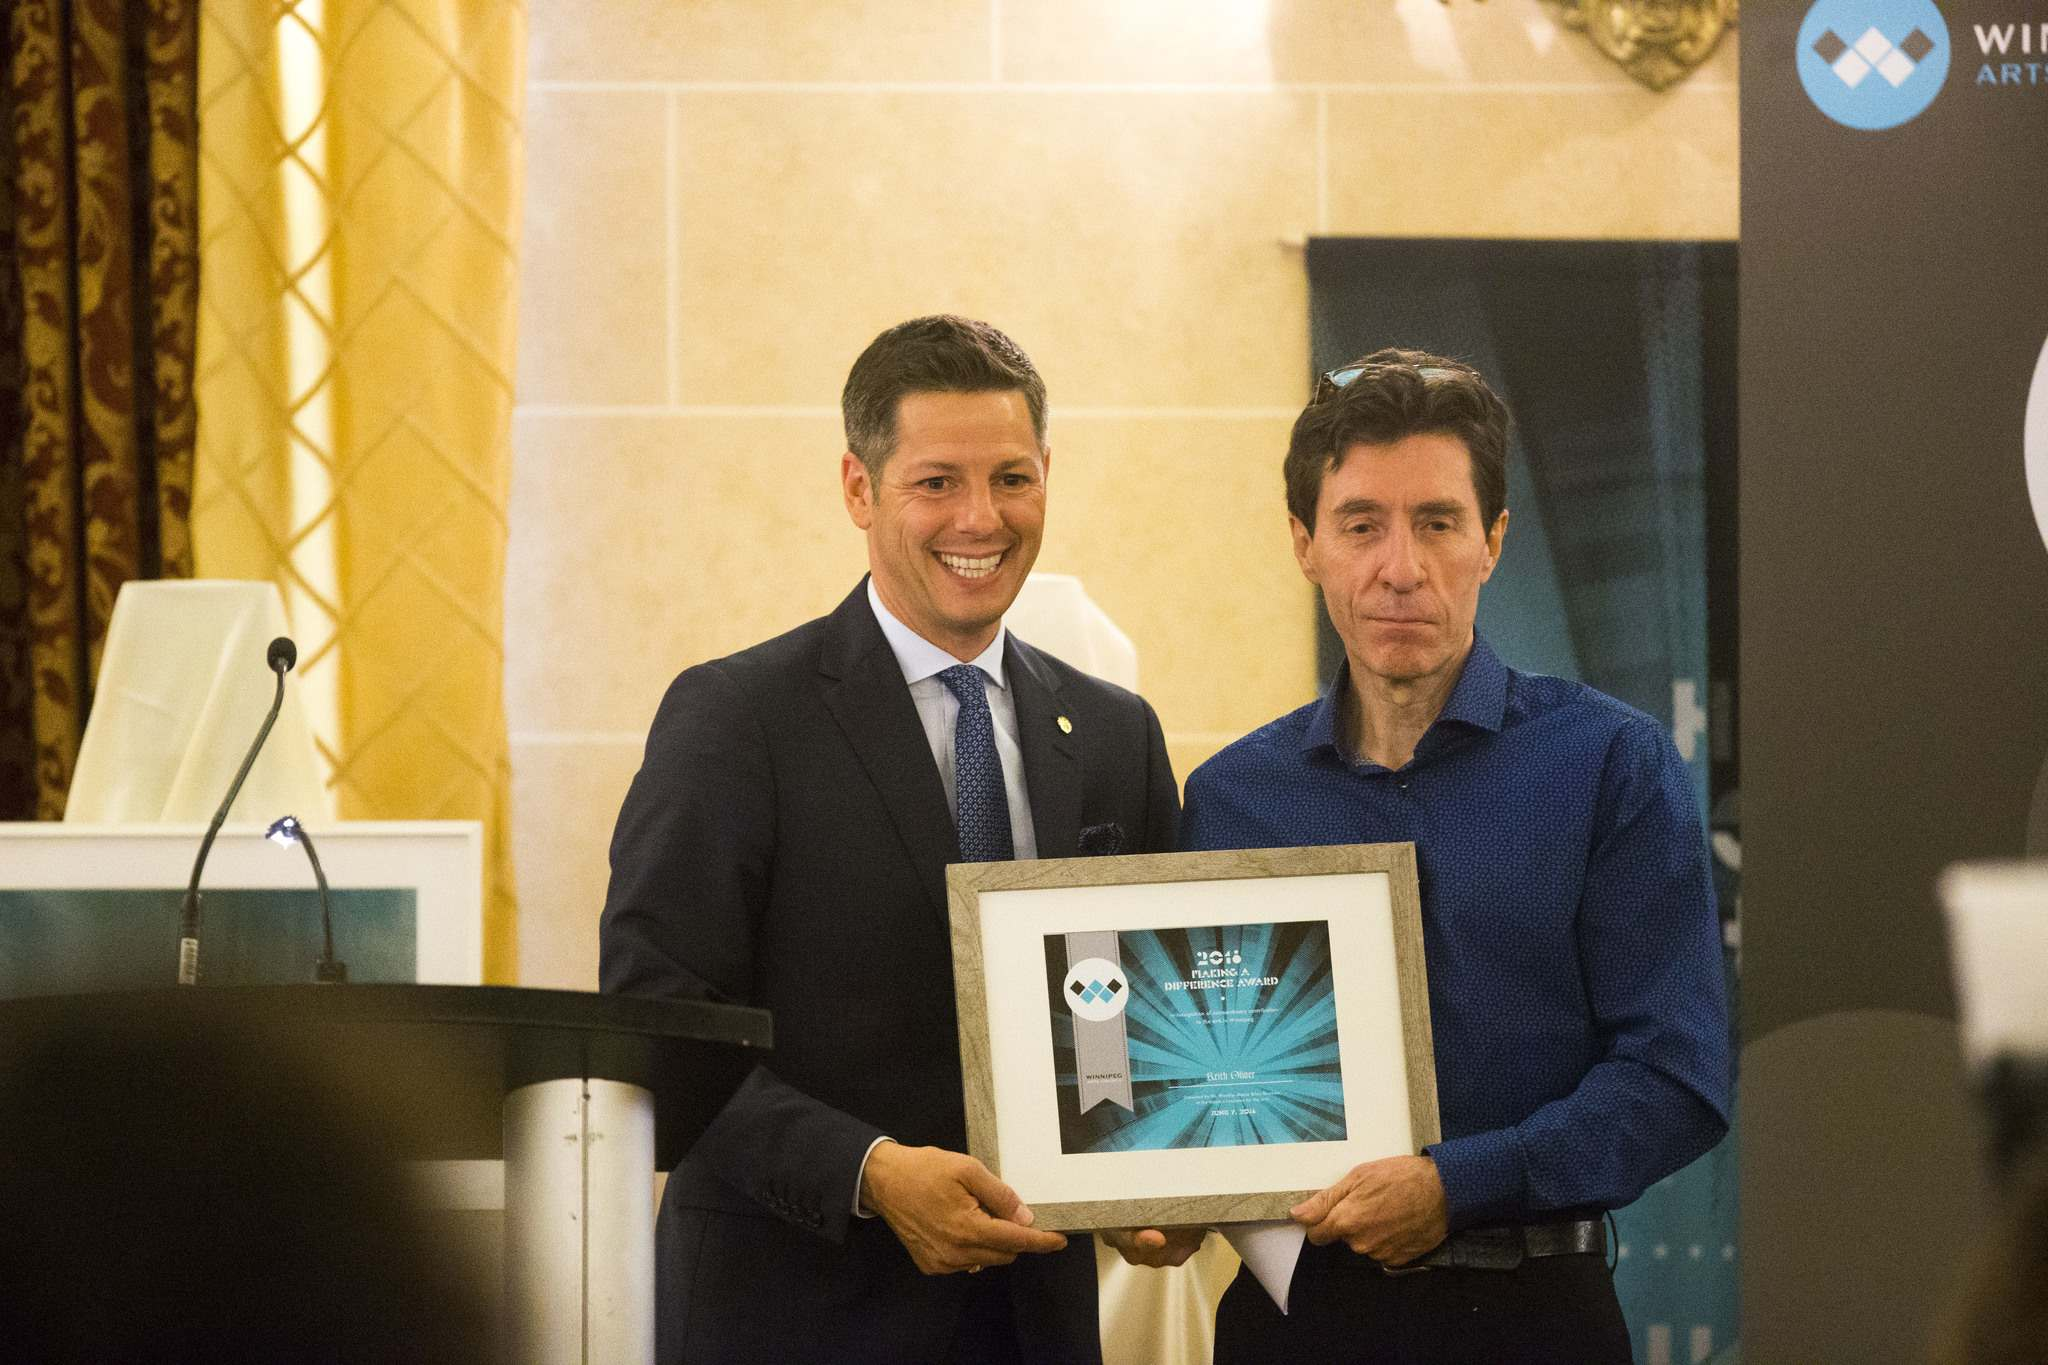 Mayor Brian Bowman and Making a Difference Award winner Keith Oliver, president of the Manitoba Craft Council. (MIKAELA MACKENZIE / WINNIPEG FREE PRESS)